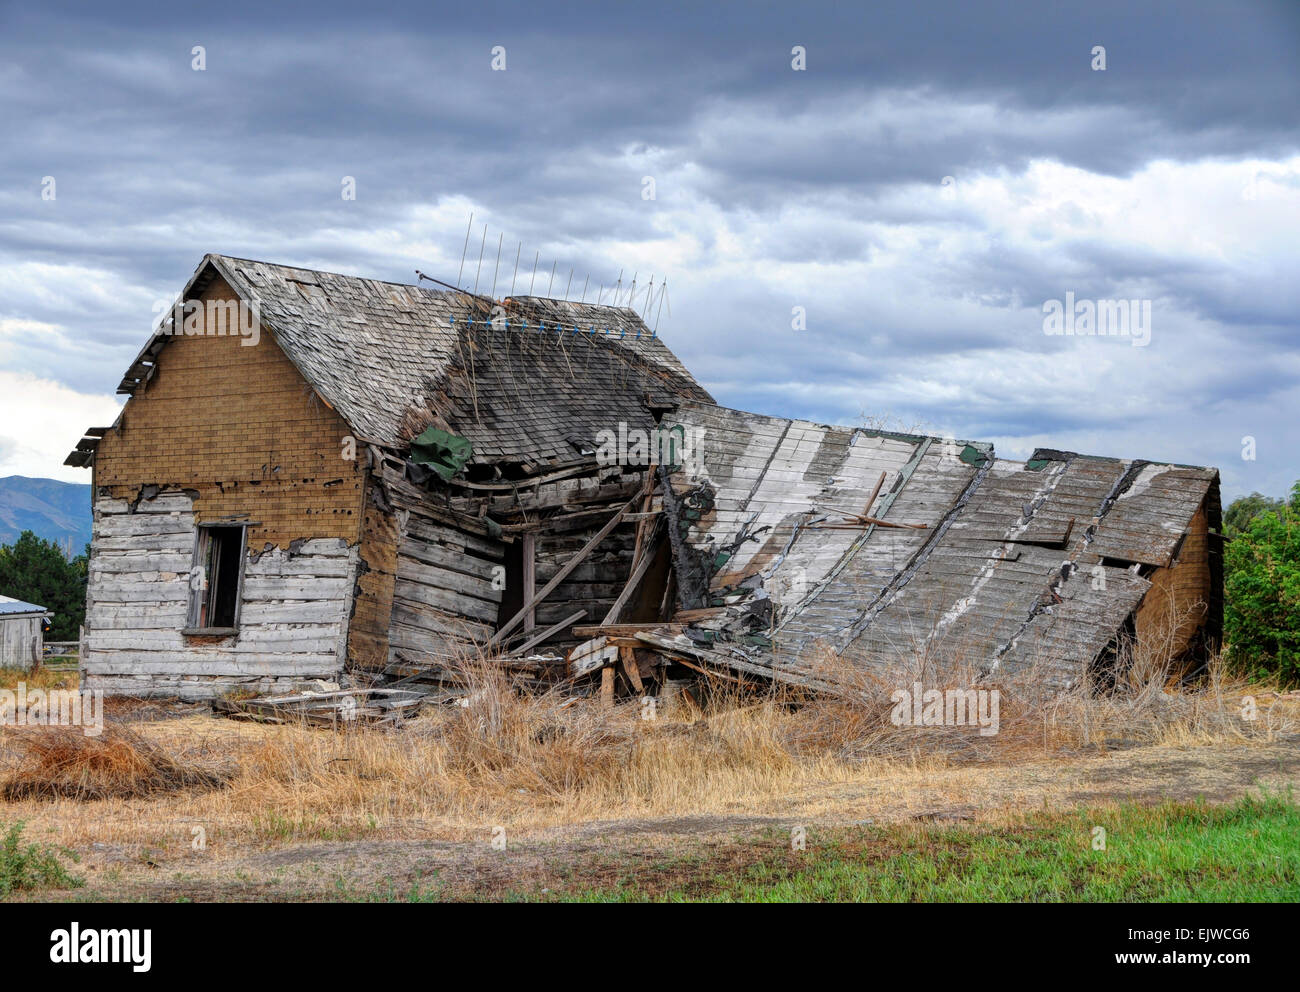 Collapsed Farm Home in Cache Valley Community - Utah - Stock Image